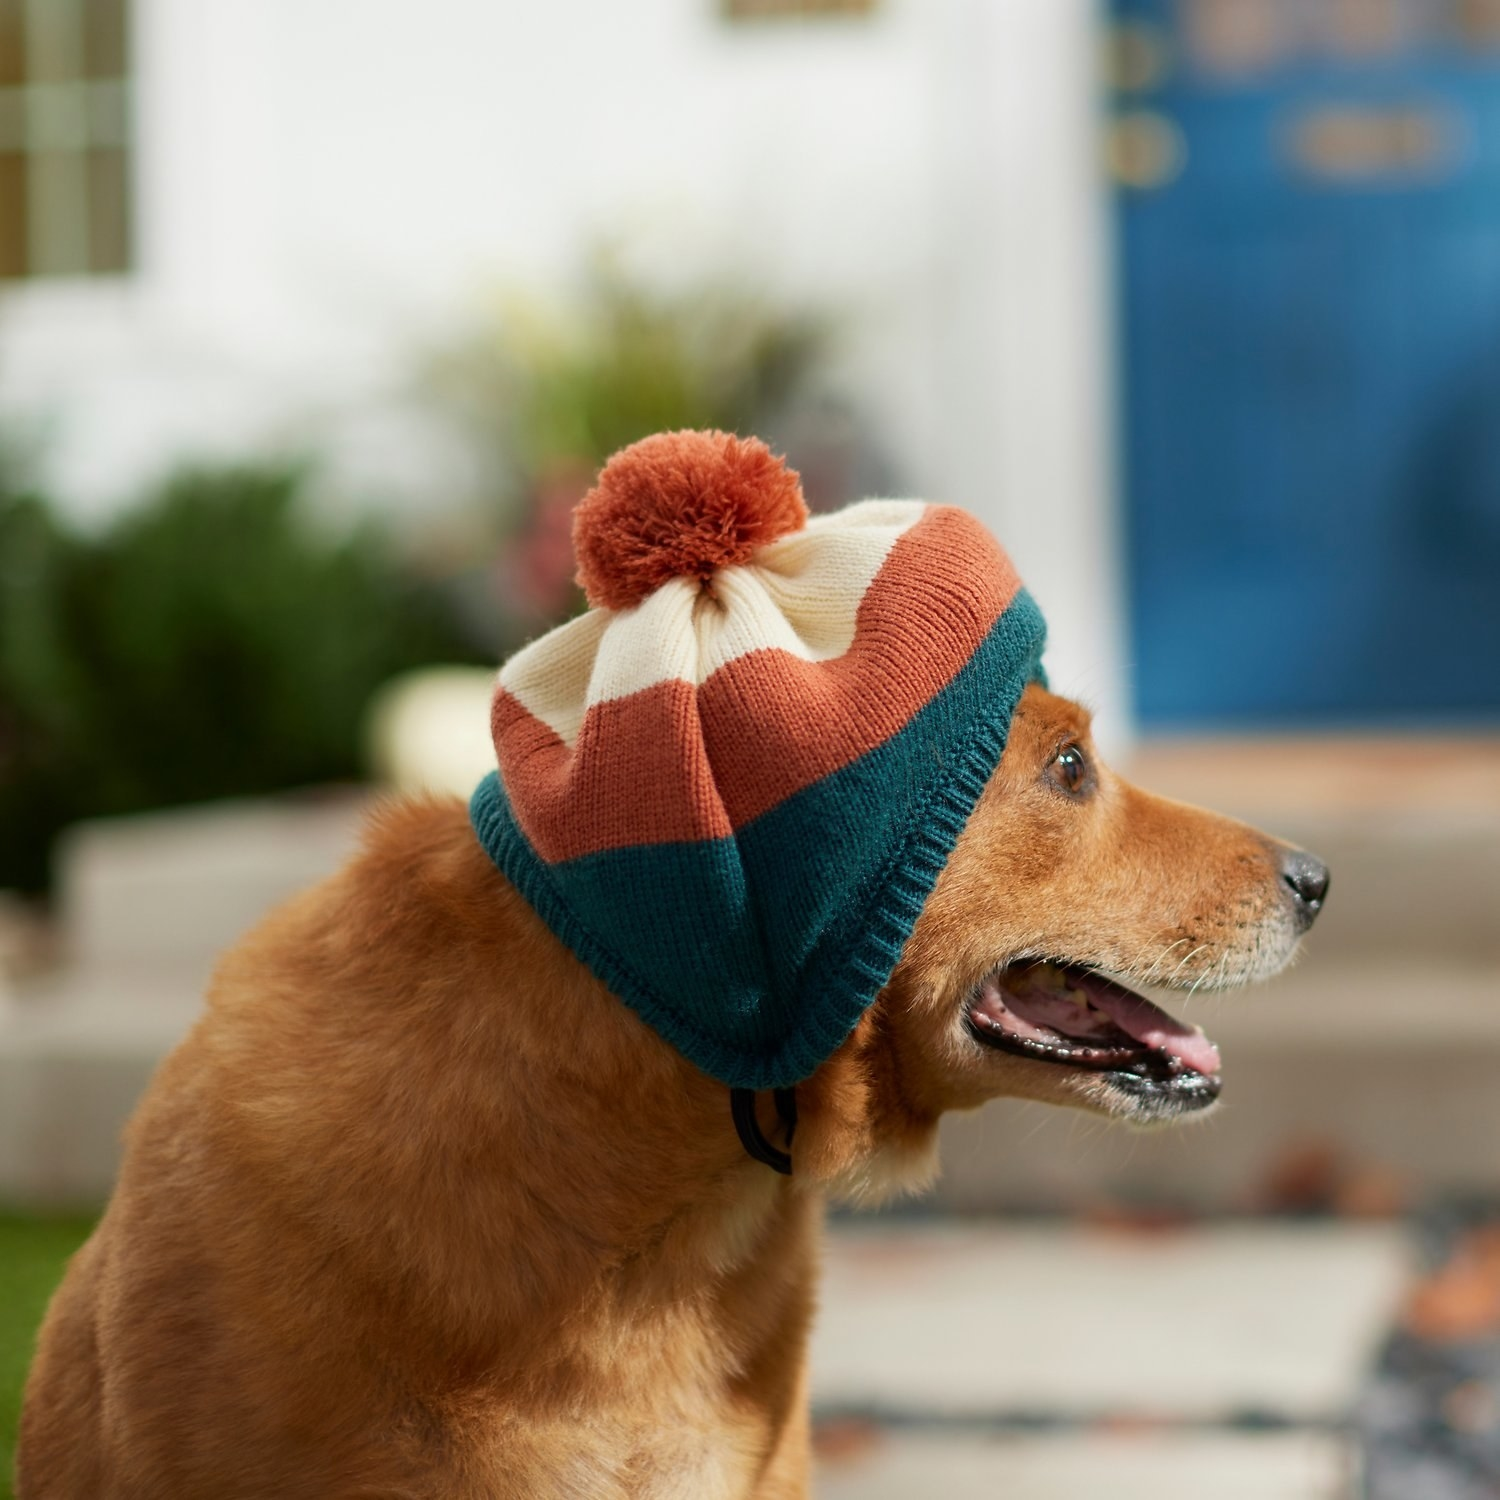 a dog wearing the cream, orange, and teal striped hat